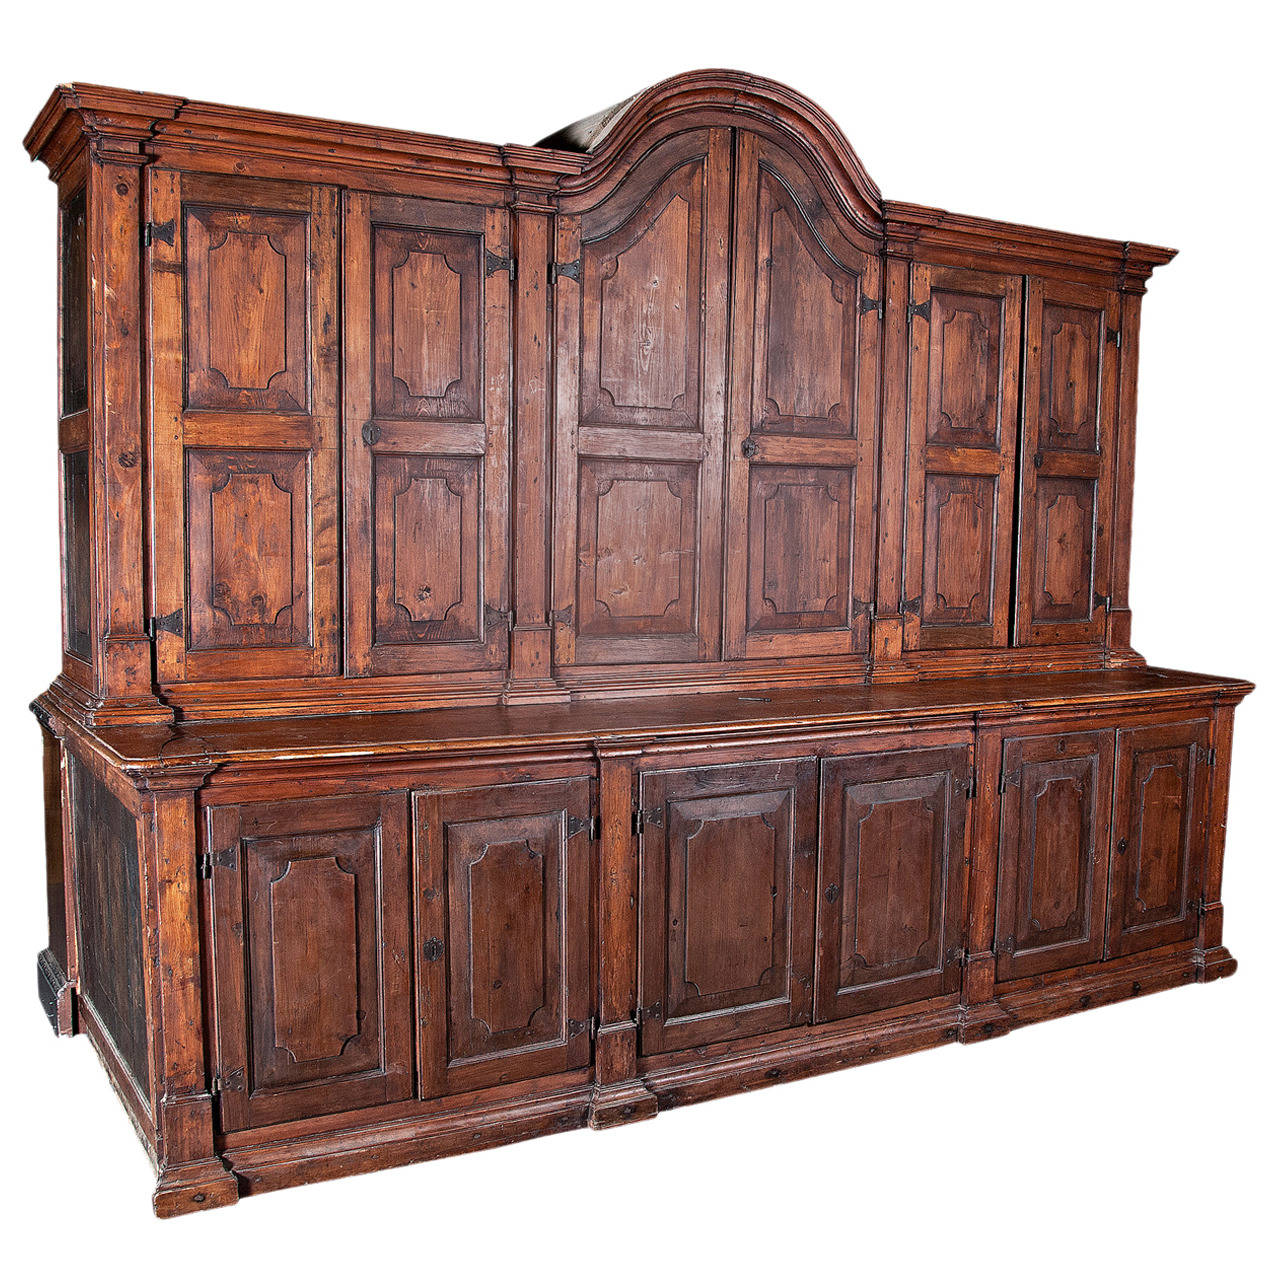 Spanish colonial massive cabinet c 1800 for sale at 1stdibs for Furniture in spanish